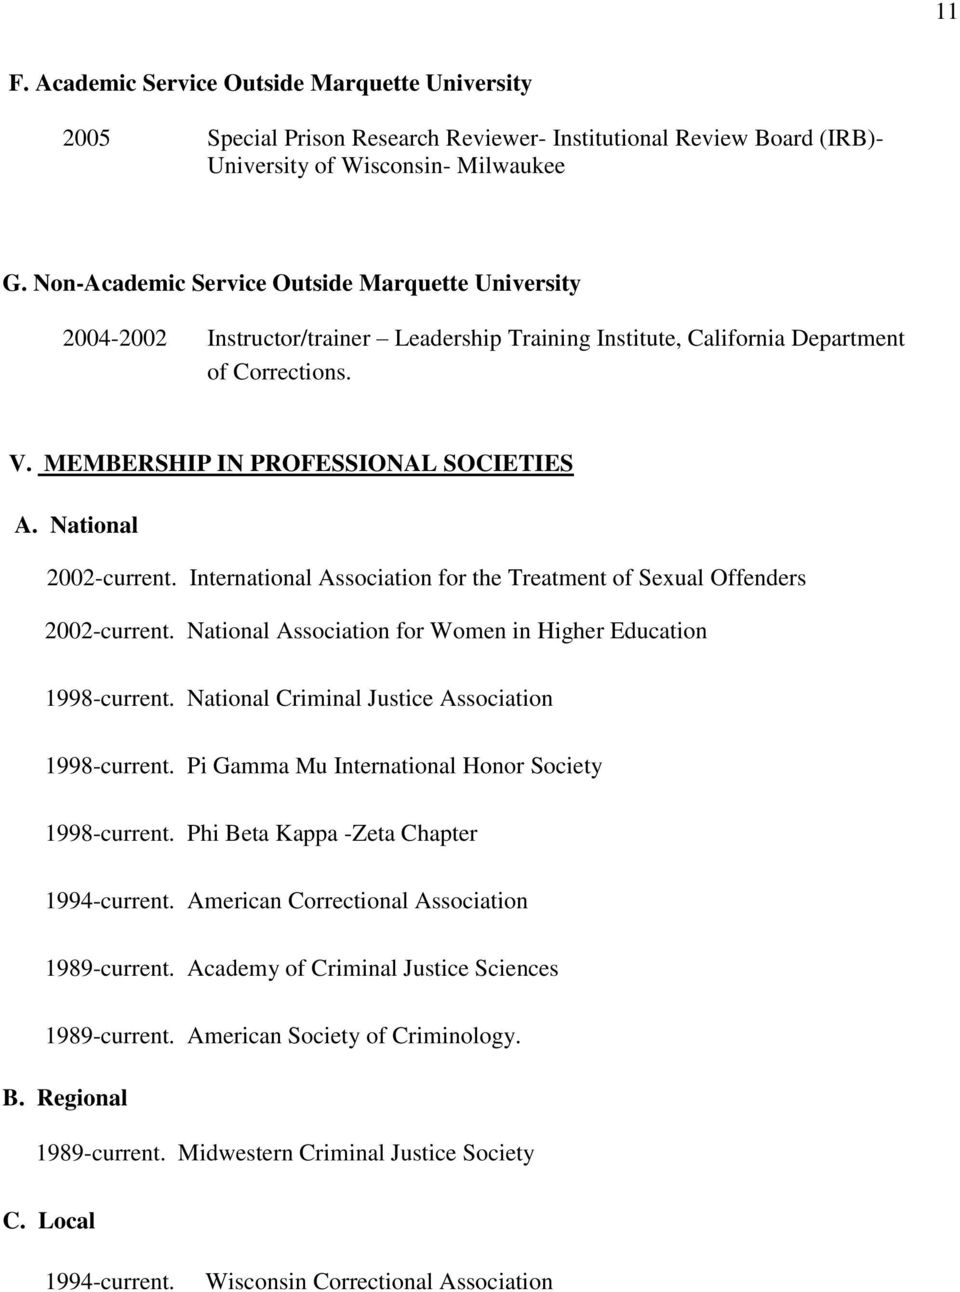 National 2002-current. International Association for the Treatment of Sexual Offenders 2002-current. National Association for Women in Higher Education 1998-current.